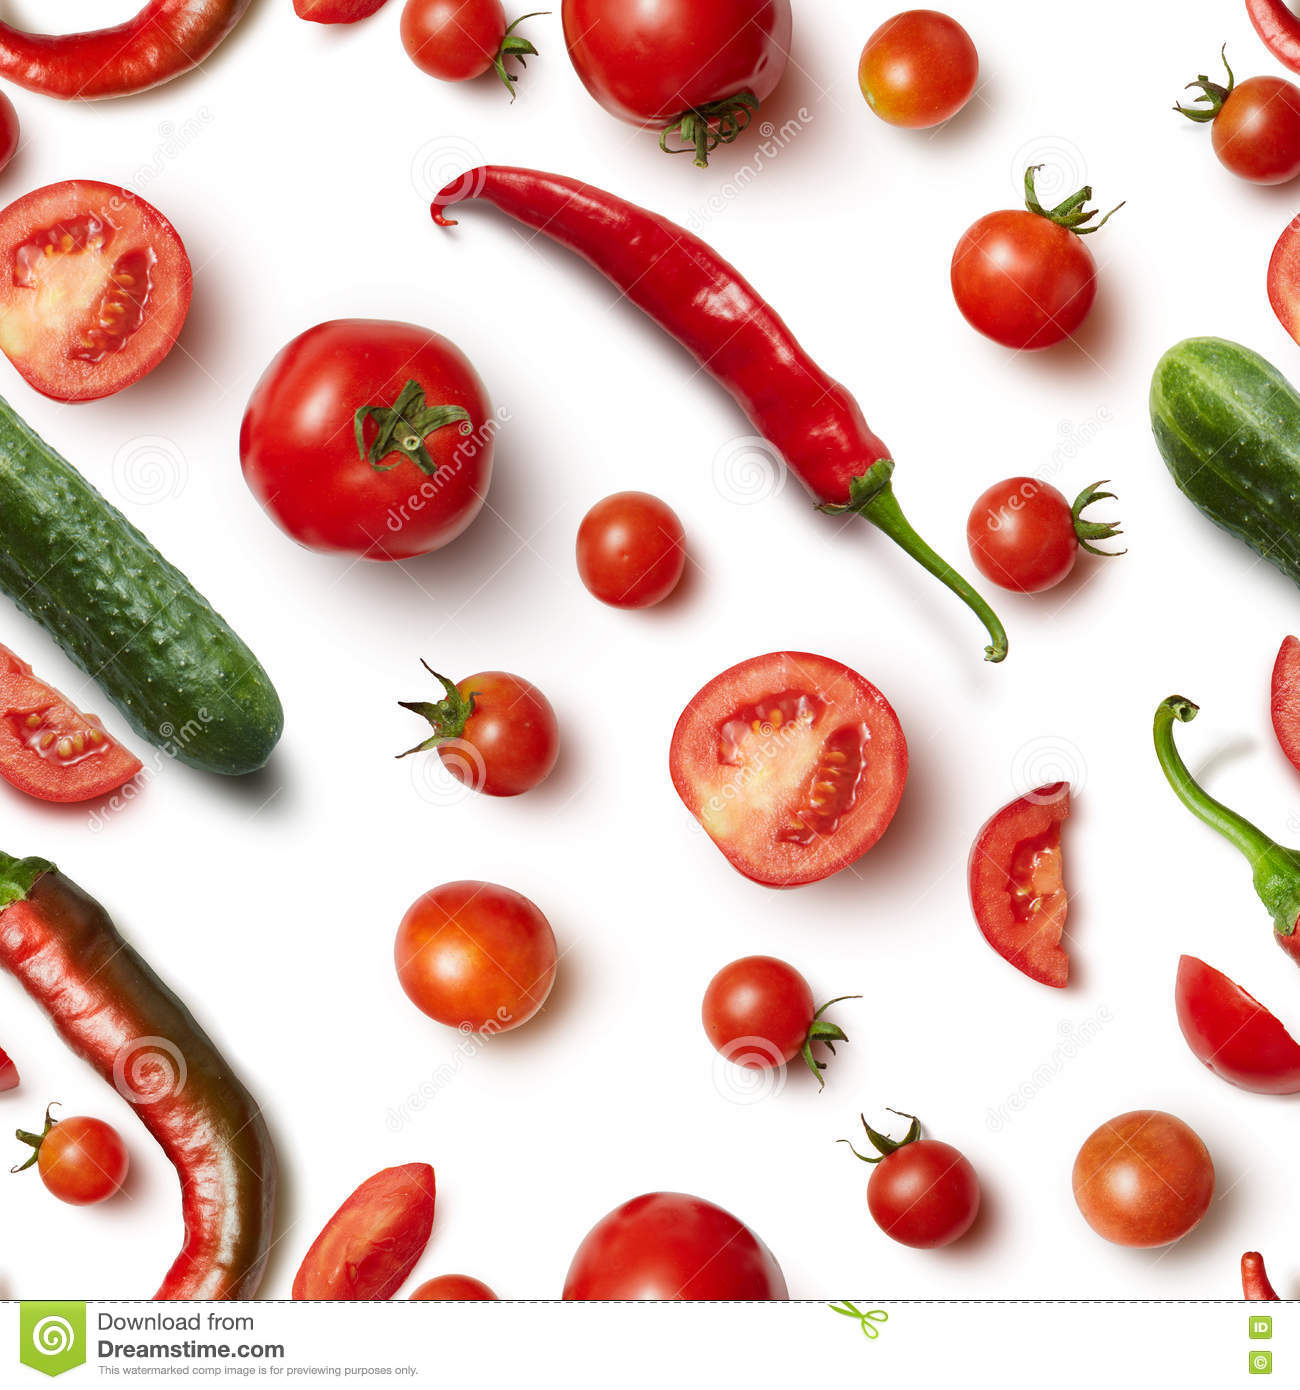 red chili pepper cucumber and tomato on white background stock photography cartoondealer. Black Bedroom Furniture Sets. Home Design Ideas